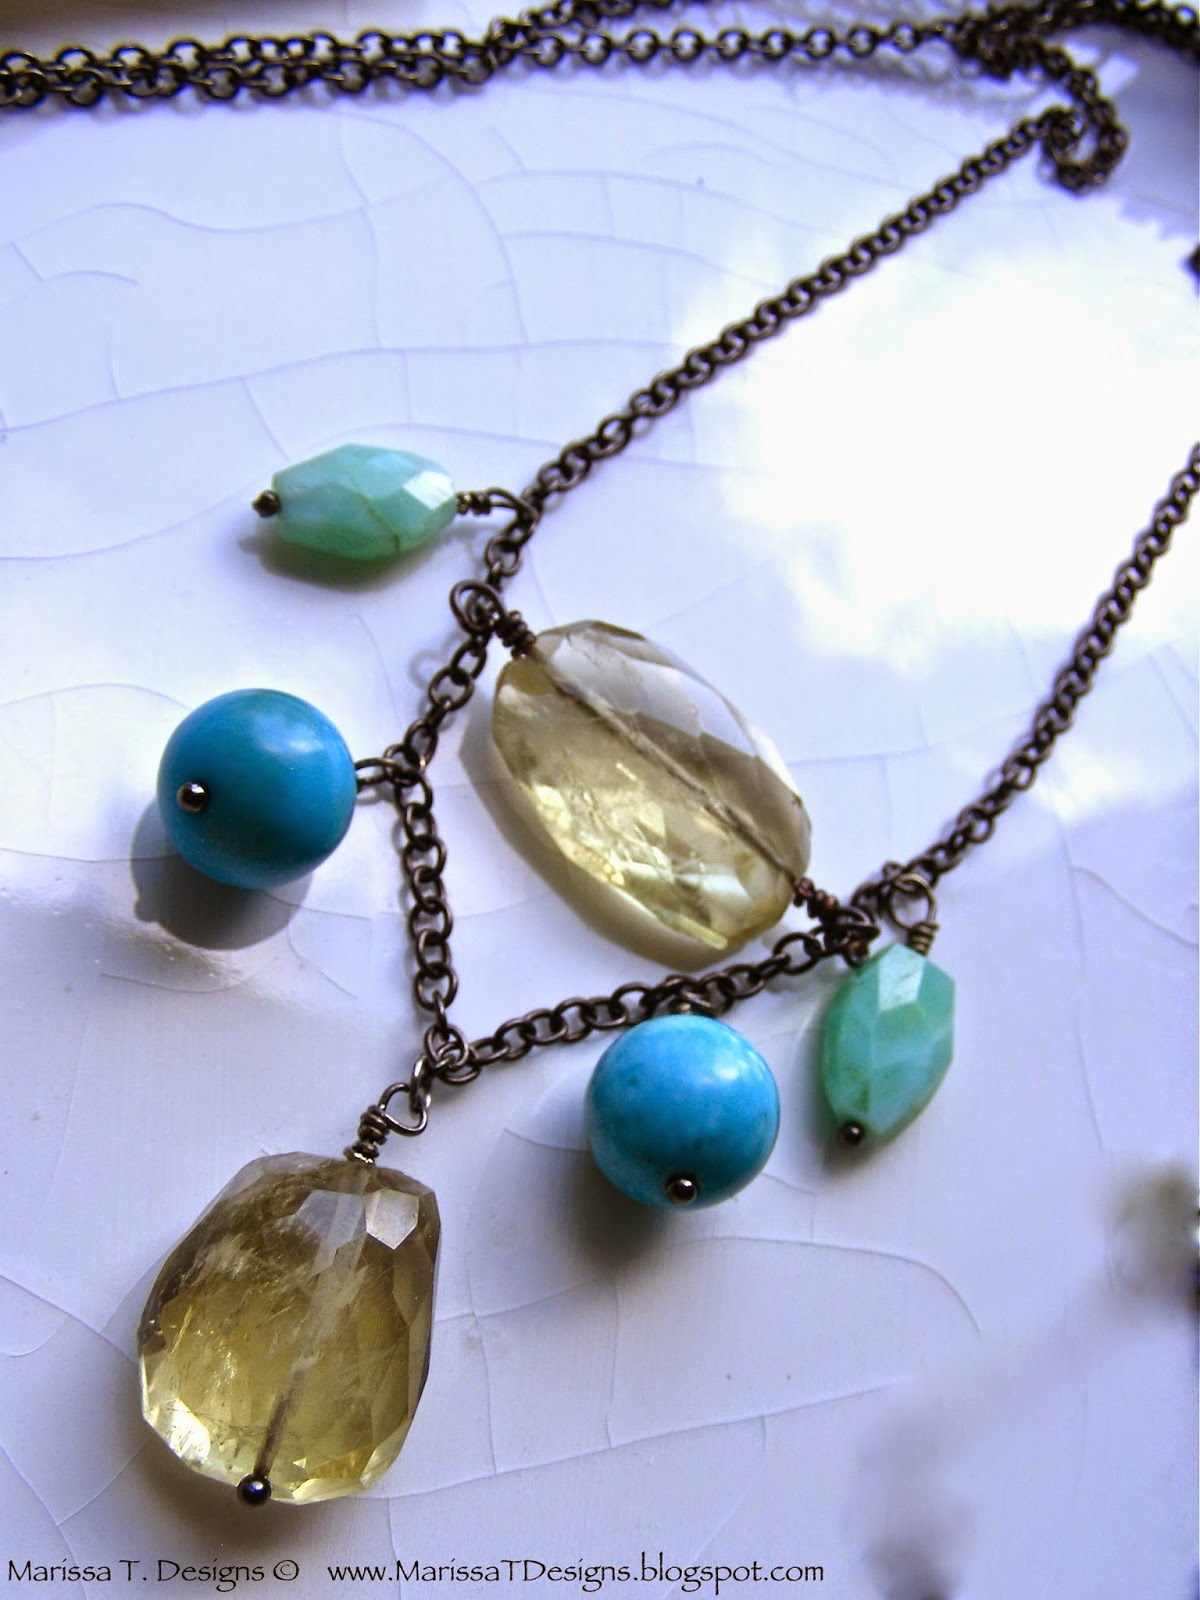 The Blue Duchess Necklace